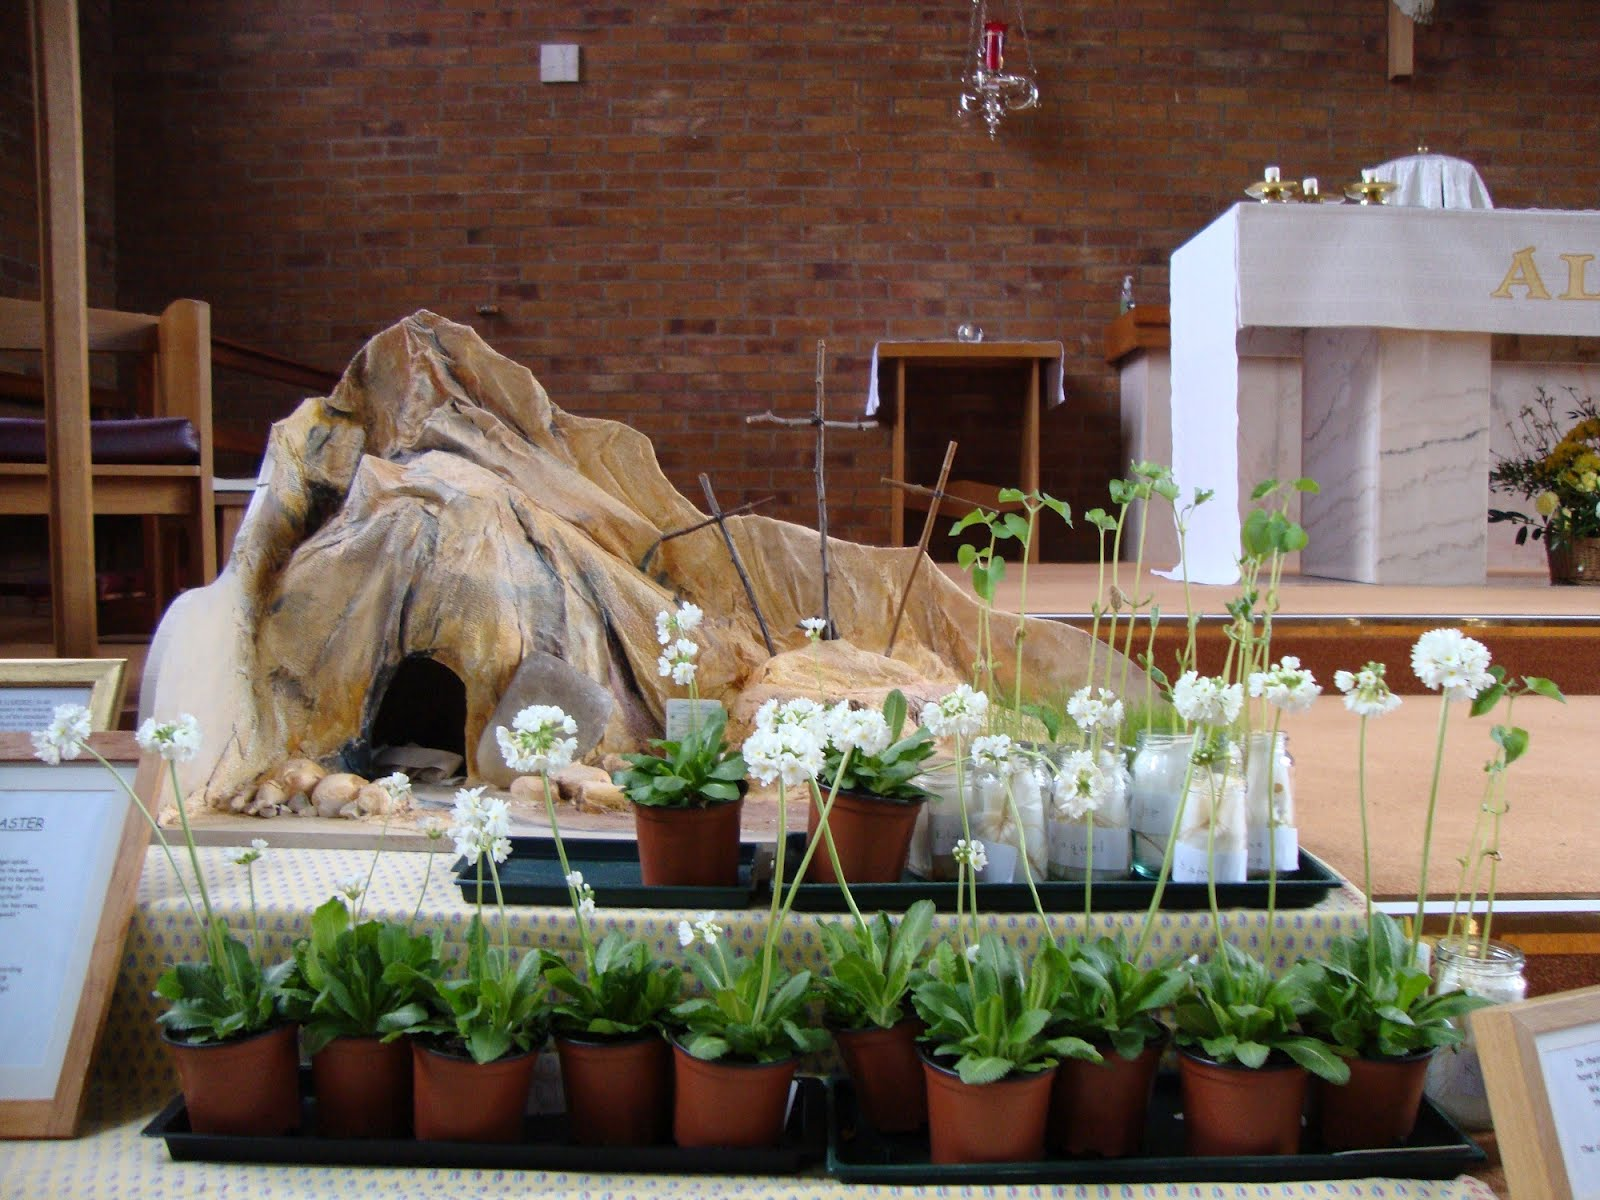 Catholic church of the immaculate conception oadby for Easter garden designs